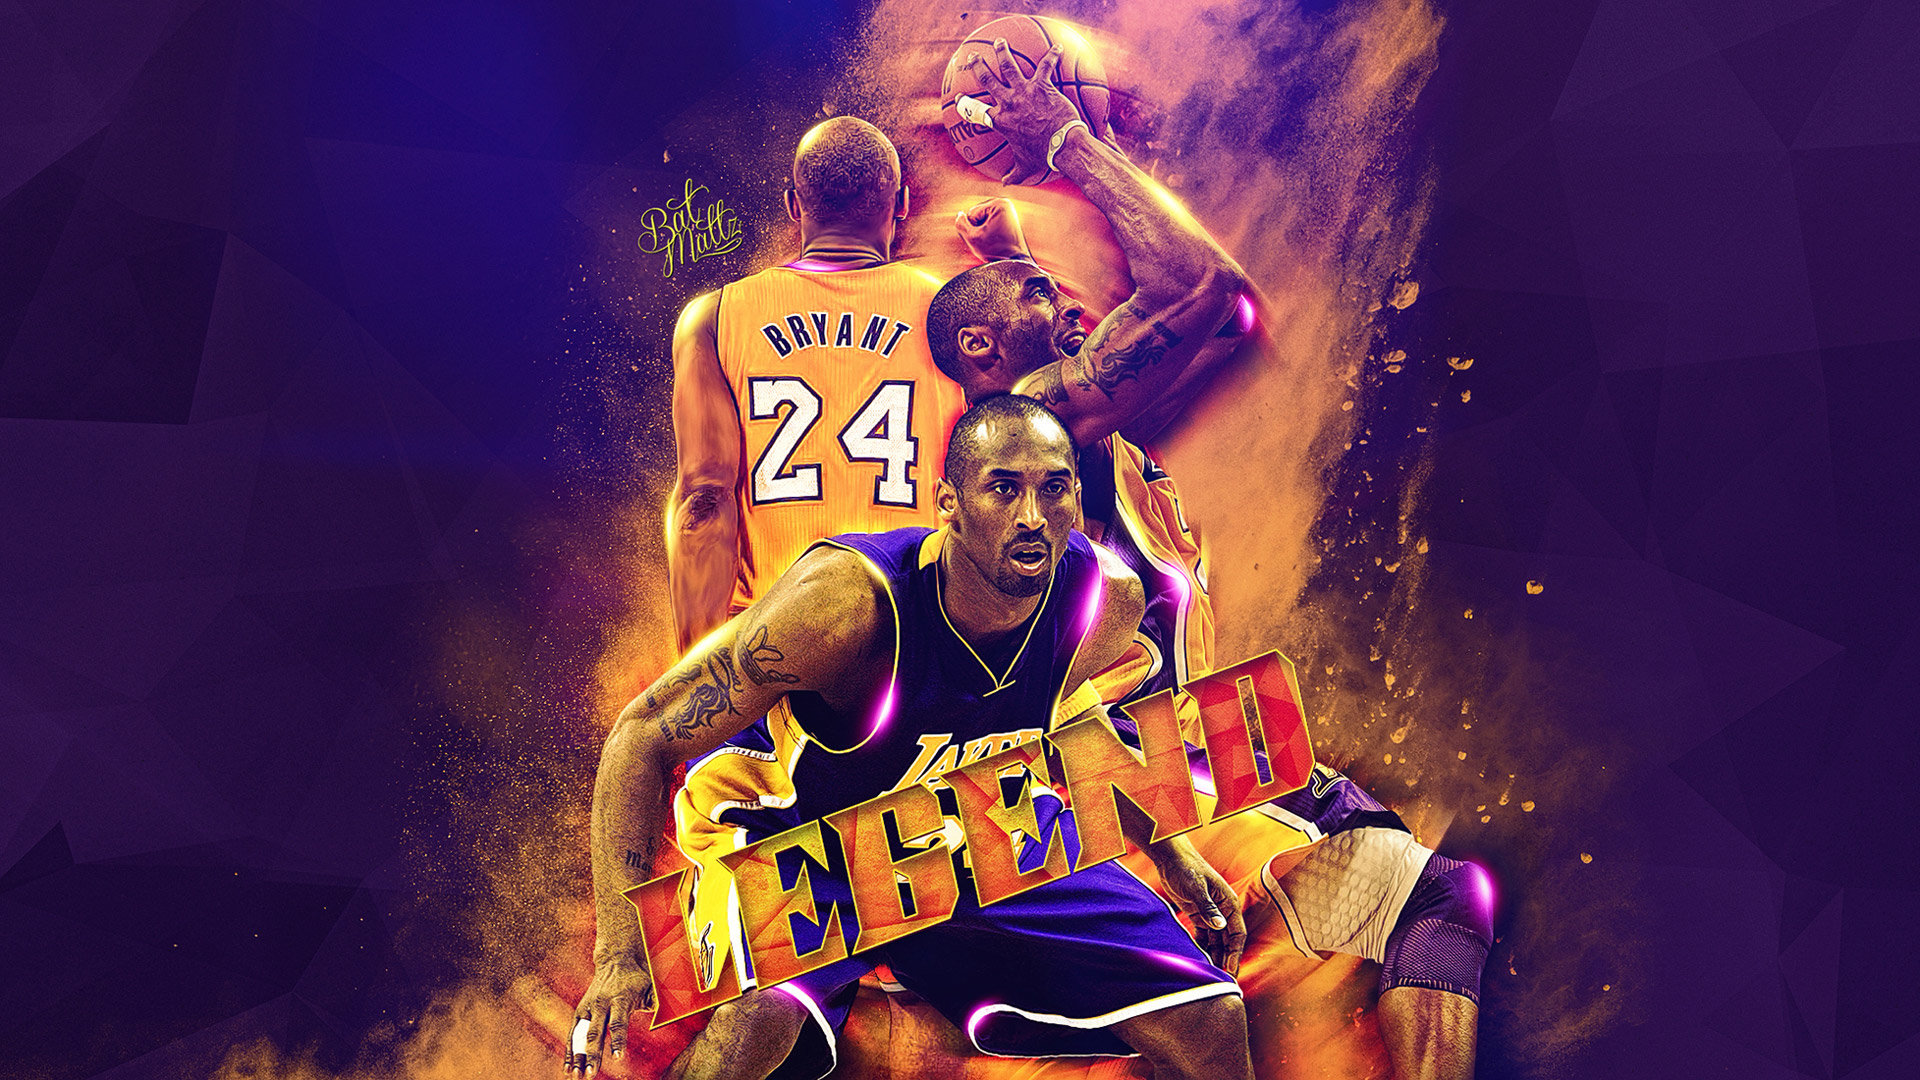 Download full hd 1080p Kobe Bryant computer background ID:162369 for free